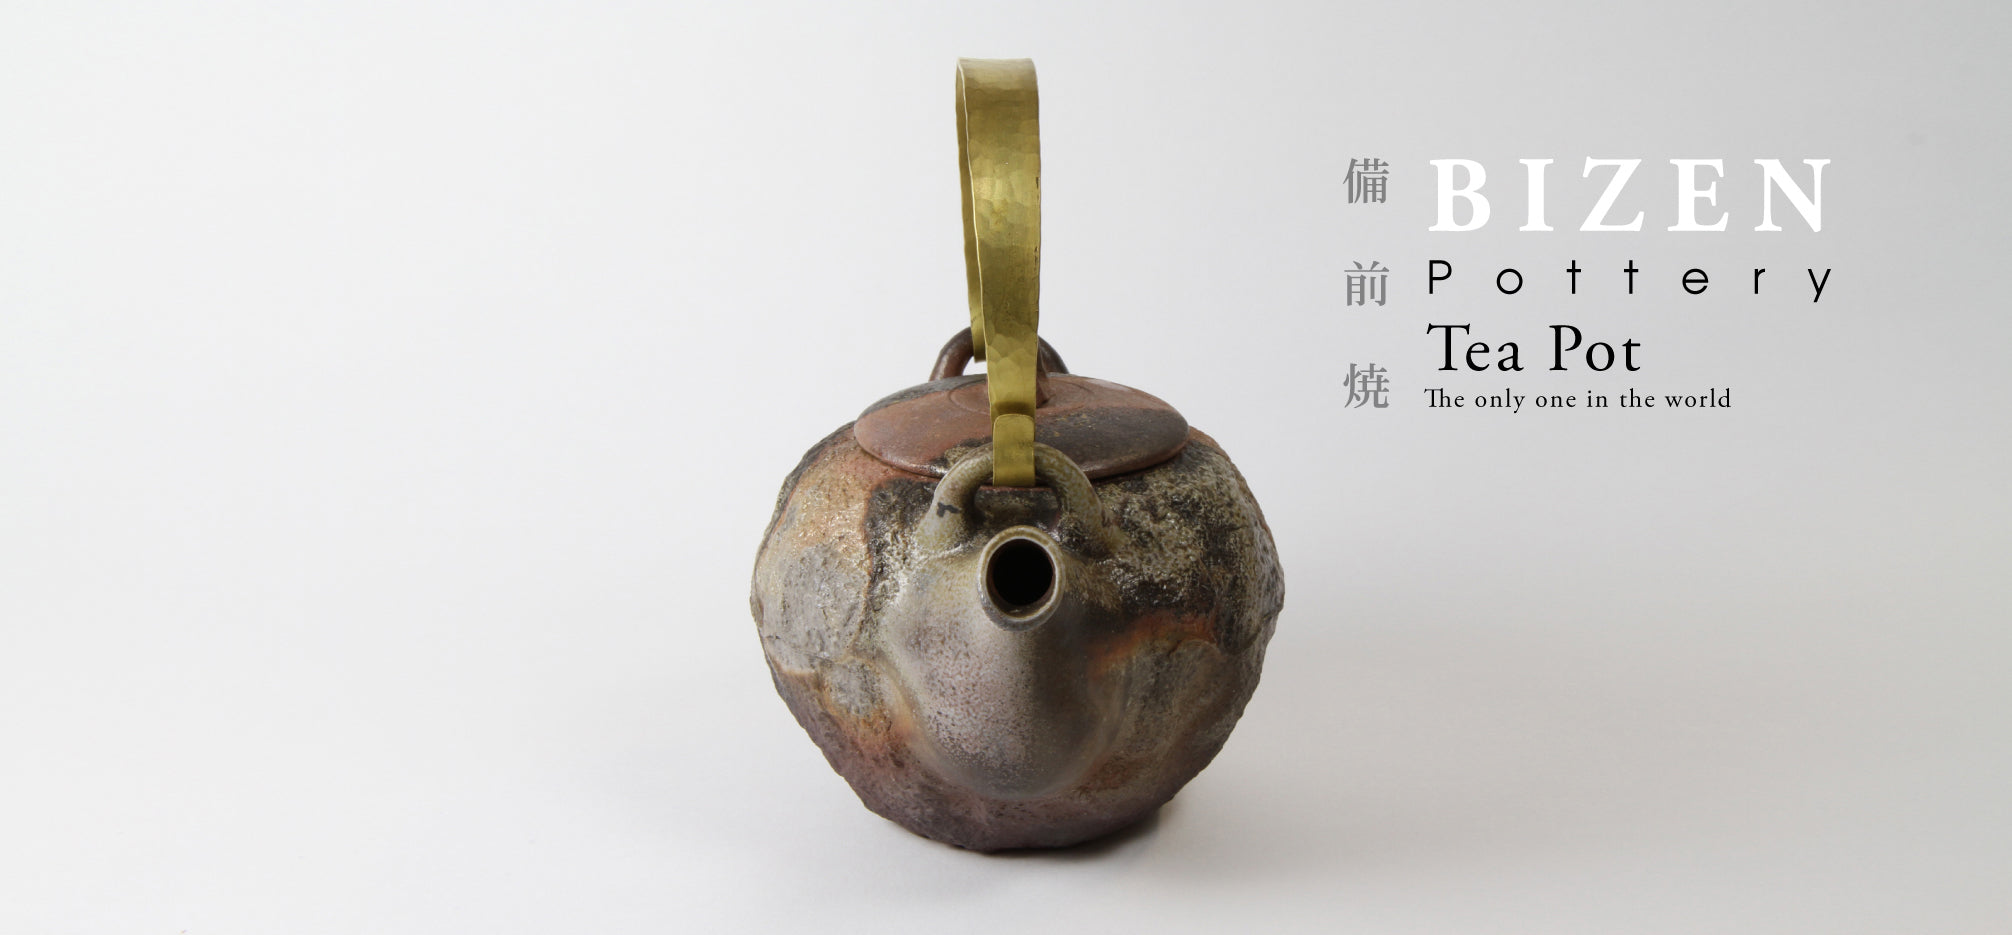 BIZEN Pottery Tea Pot The only one in the world